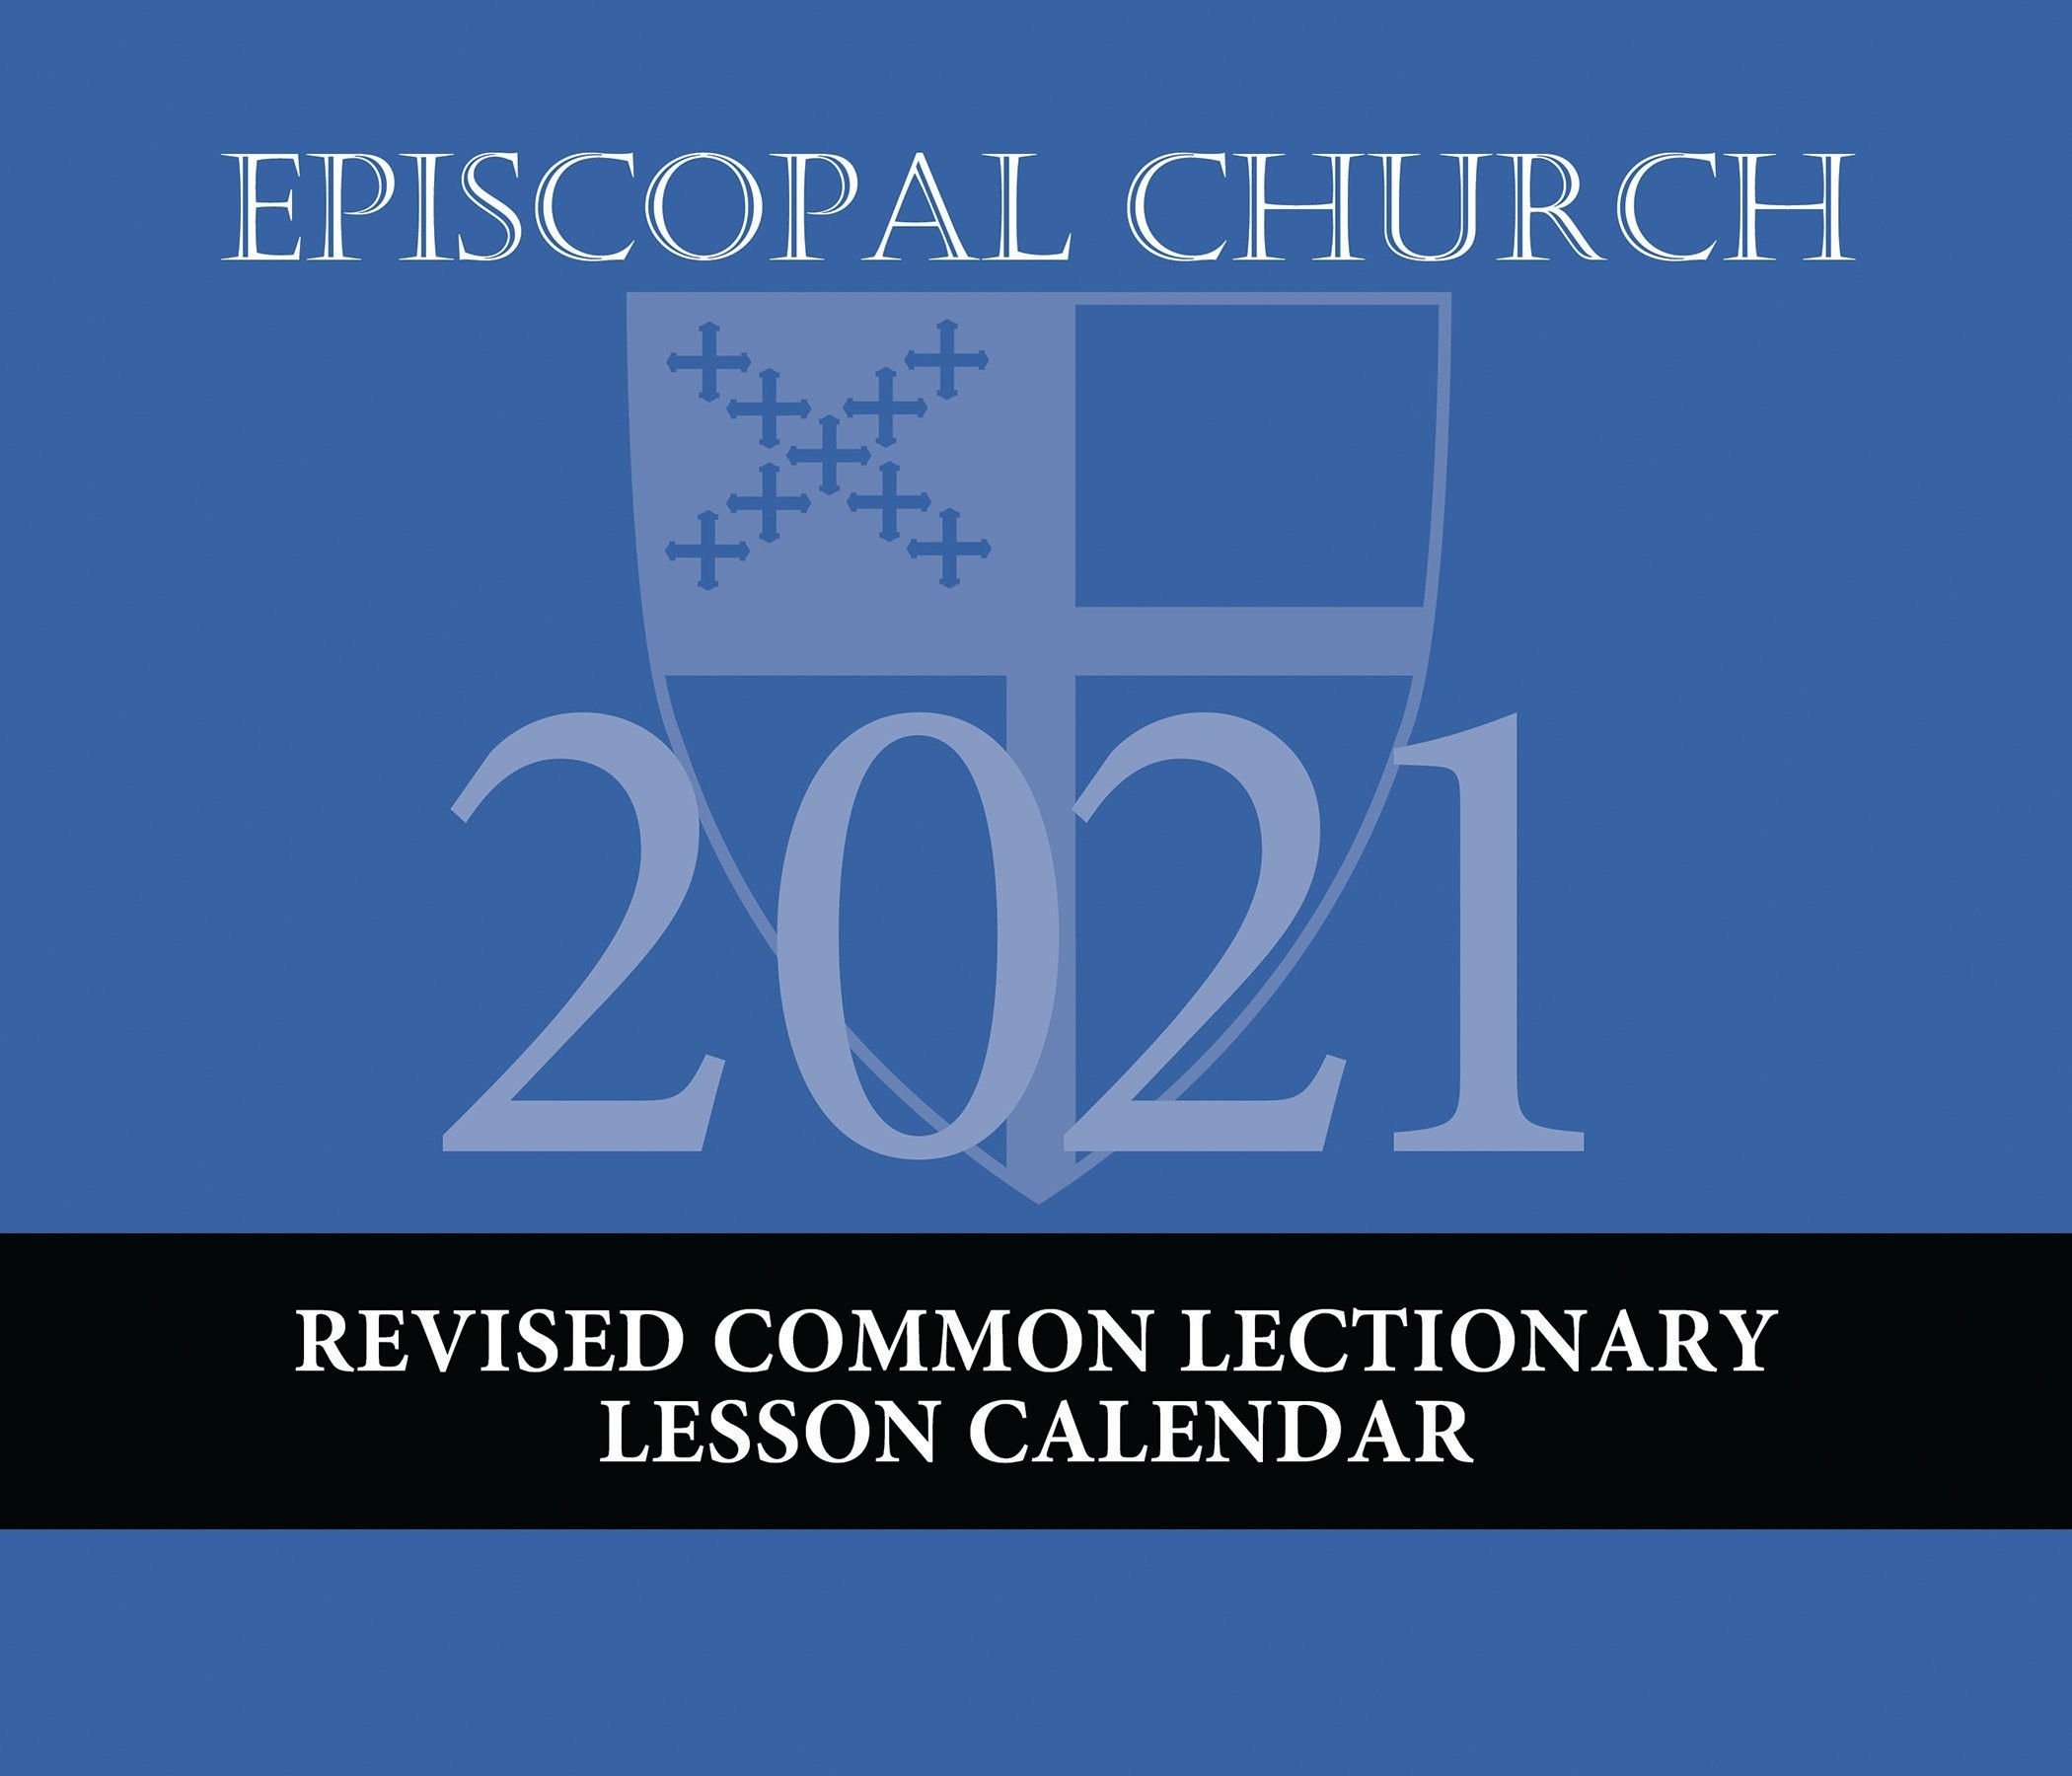 Episcopal Church Lesson Calendar Rcl 2021  Revised Common Lectionary 2021 Printable